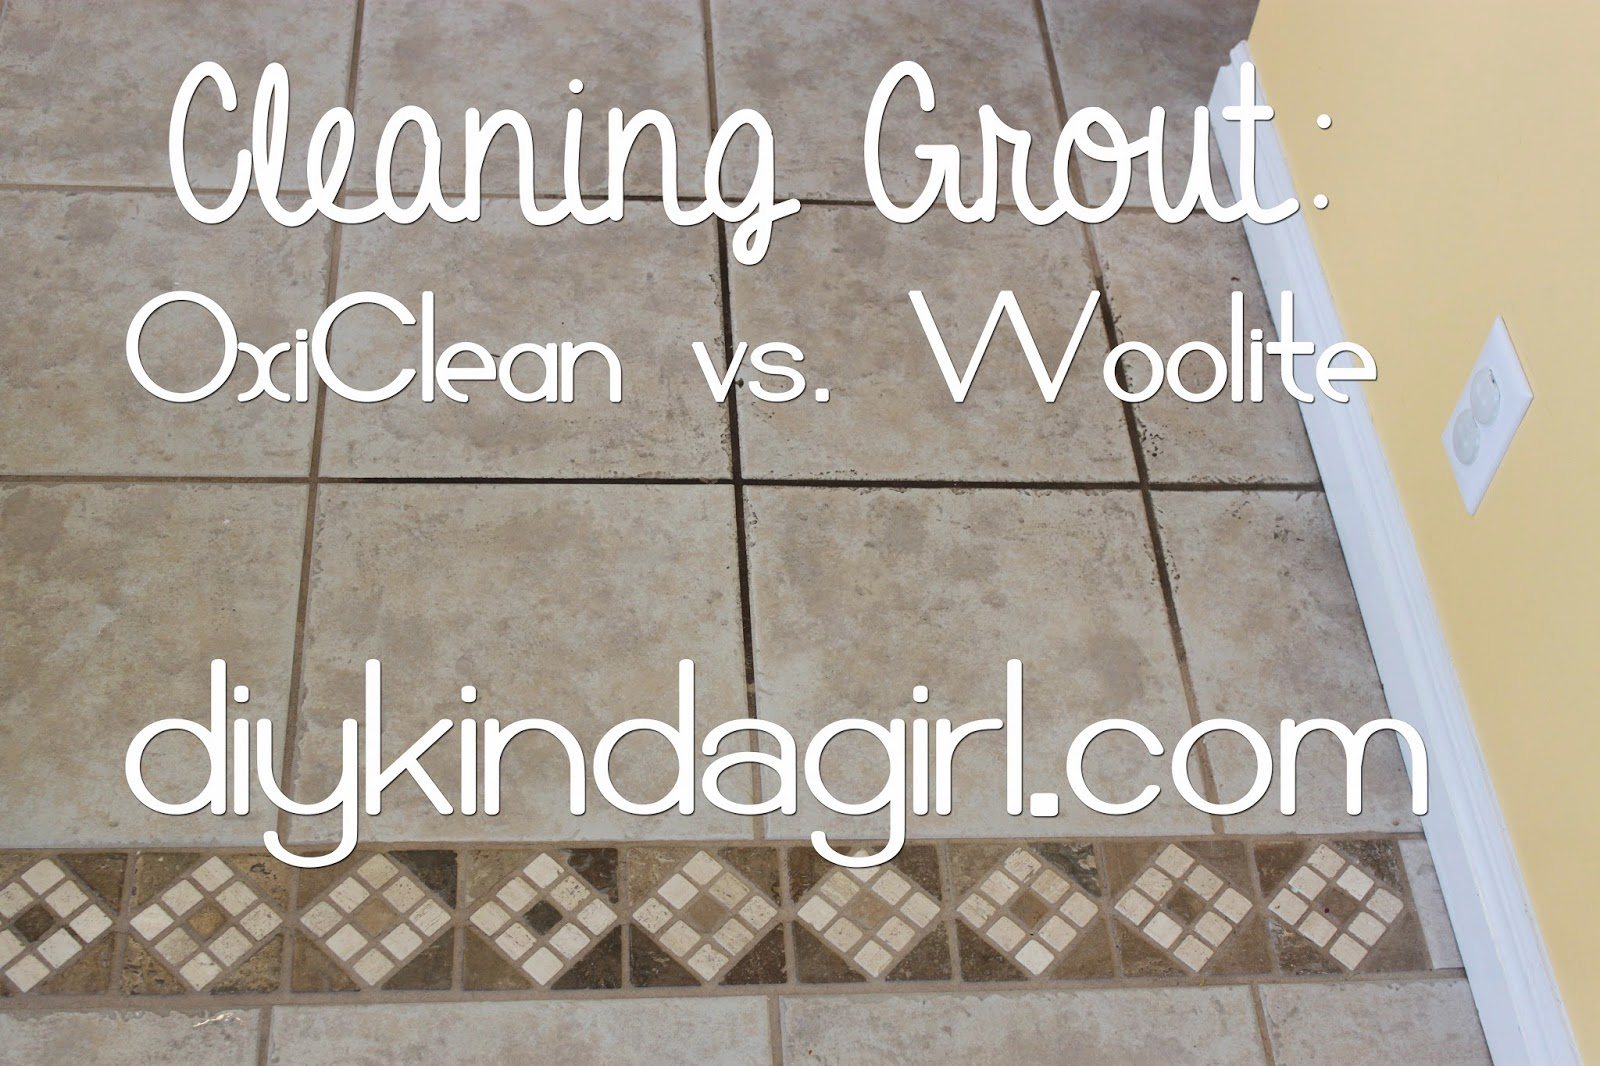 Diy kinda girl diy household tip cleaning grout oxiclean vs woolite diy household tip cleaning grout oxiclean vs woolite dailygadgetfo Gallery